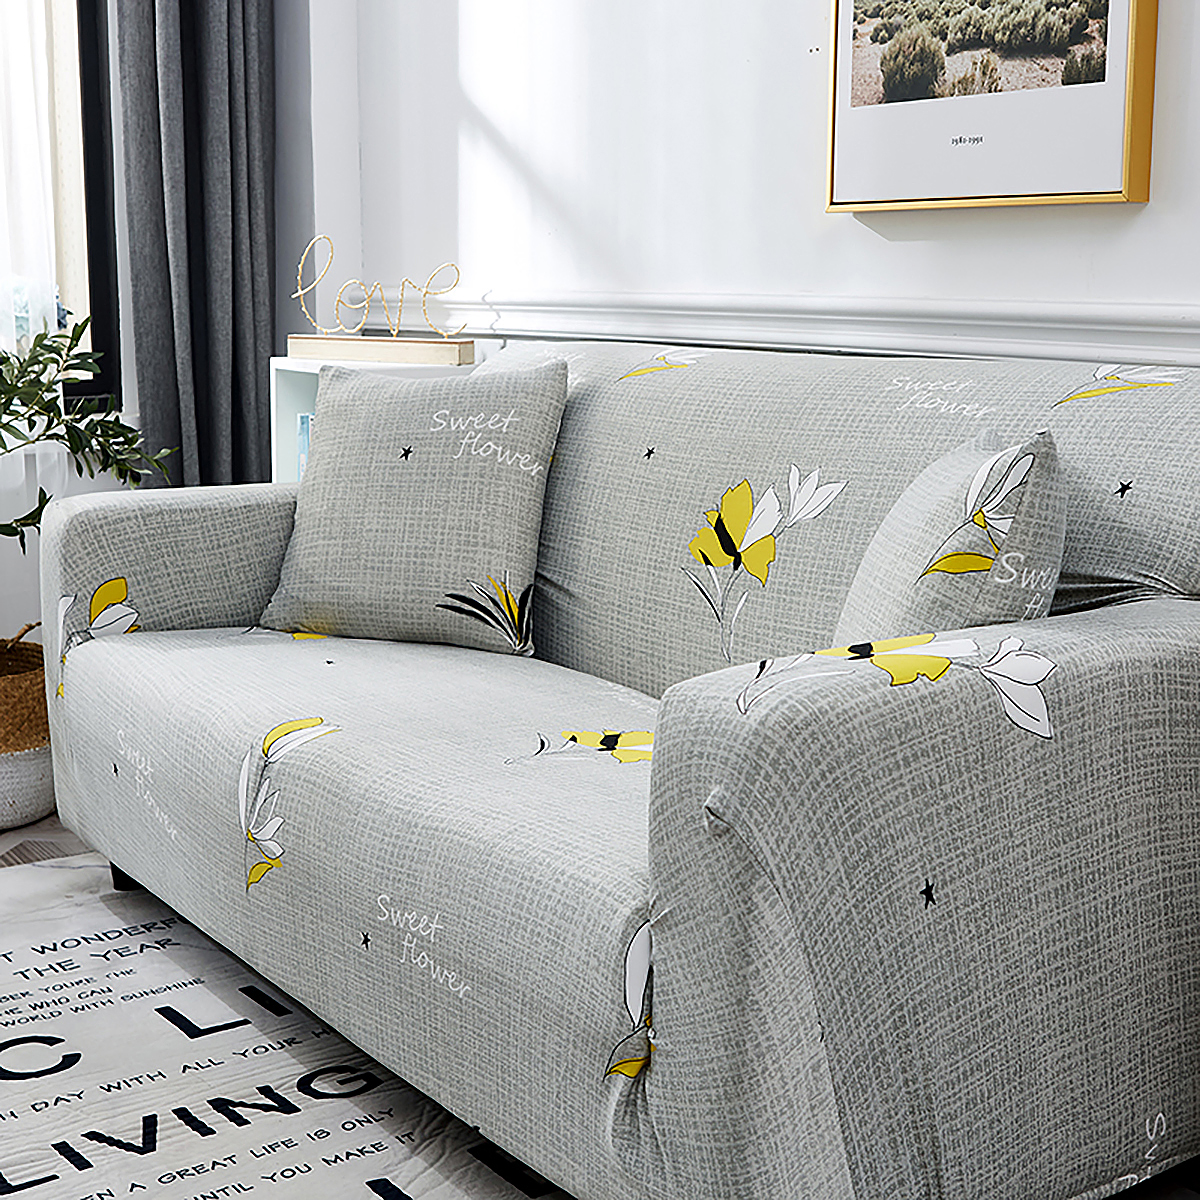 1-2-3-4-SEATER-SOFA-COVERS-Elastic-Fabric-Loveseat-Couch-Settee-Slipcover miniatuur 16